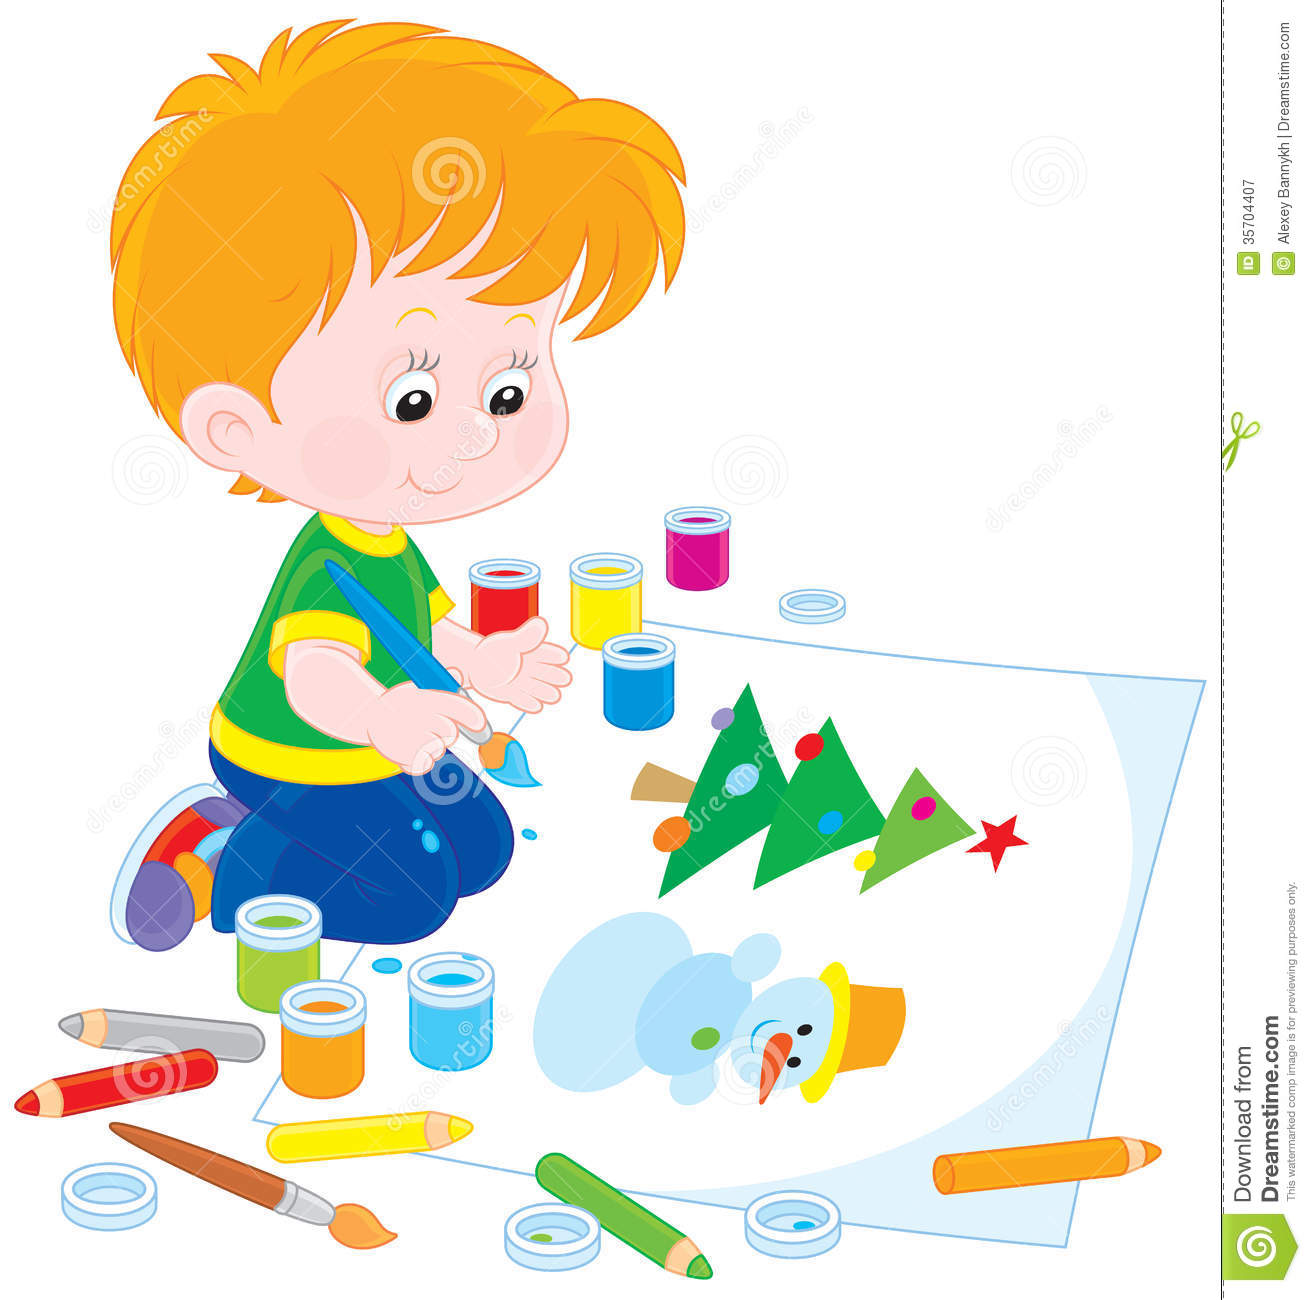 Little boy drawing a picture with a funny snowman and Christmas tree.